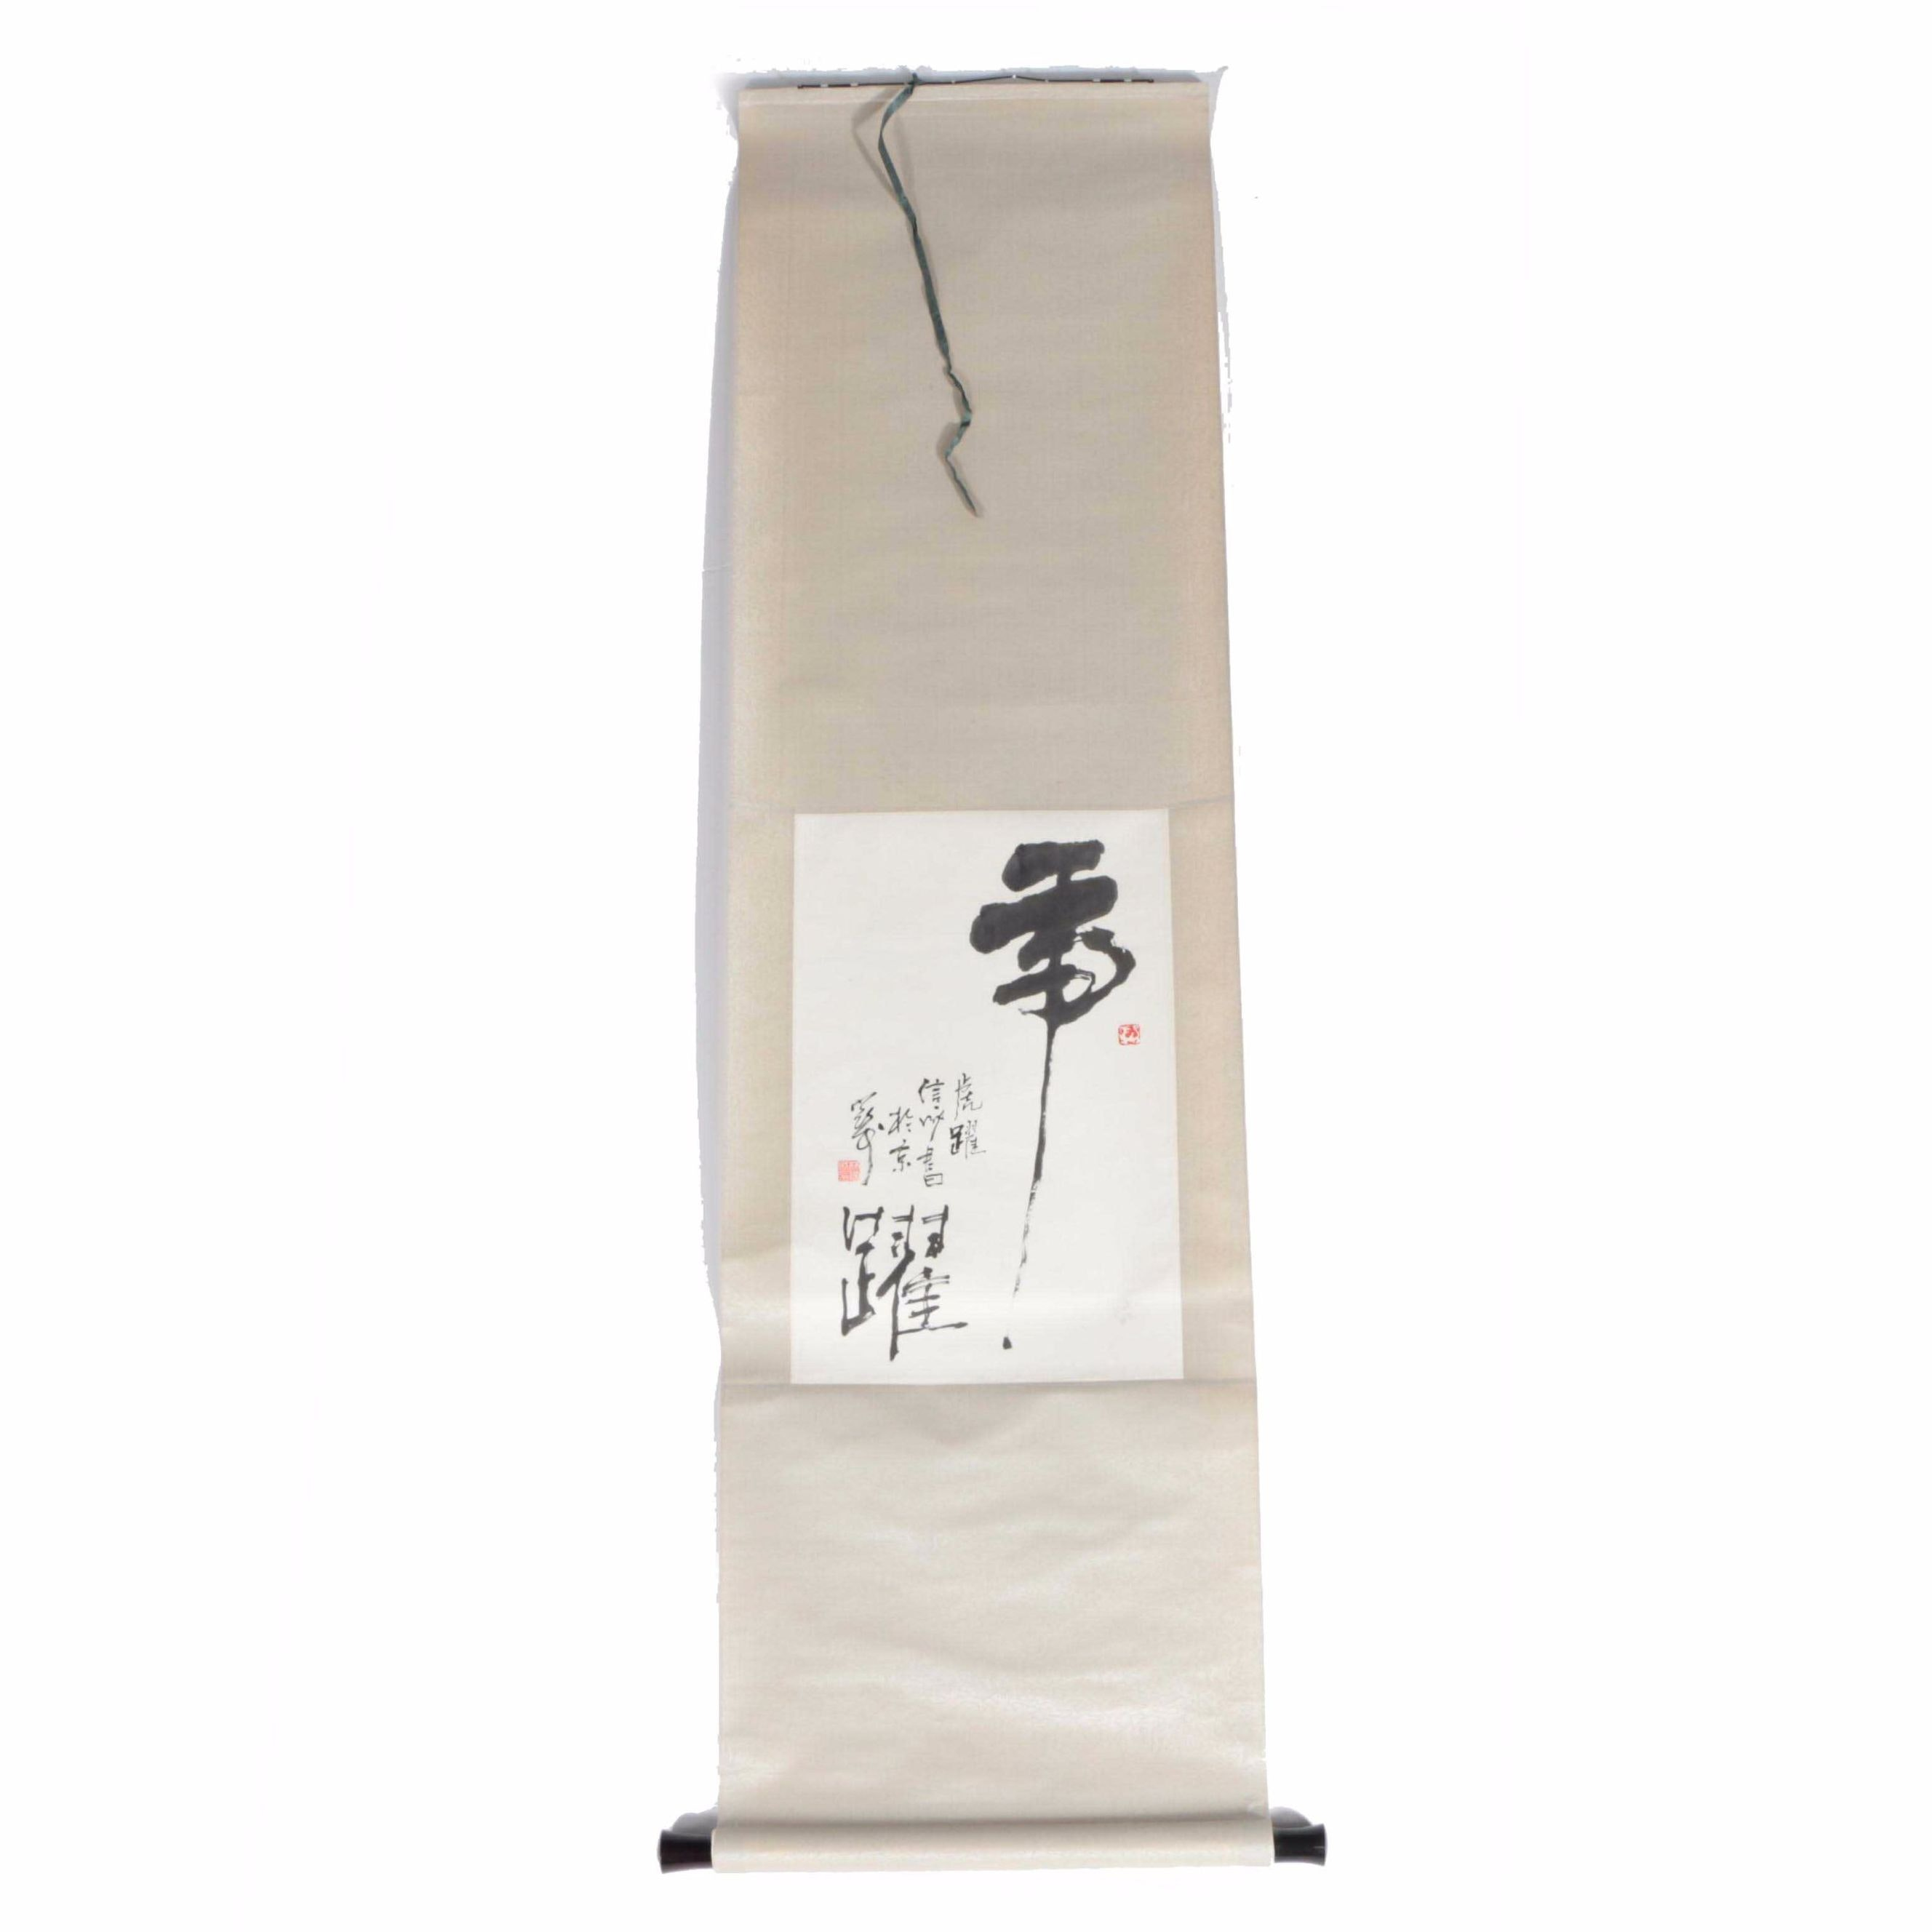 Chinese Ink Calligraphy Hanging Scroll